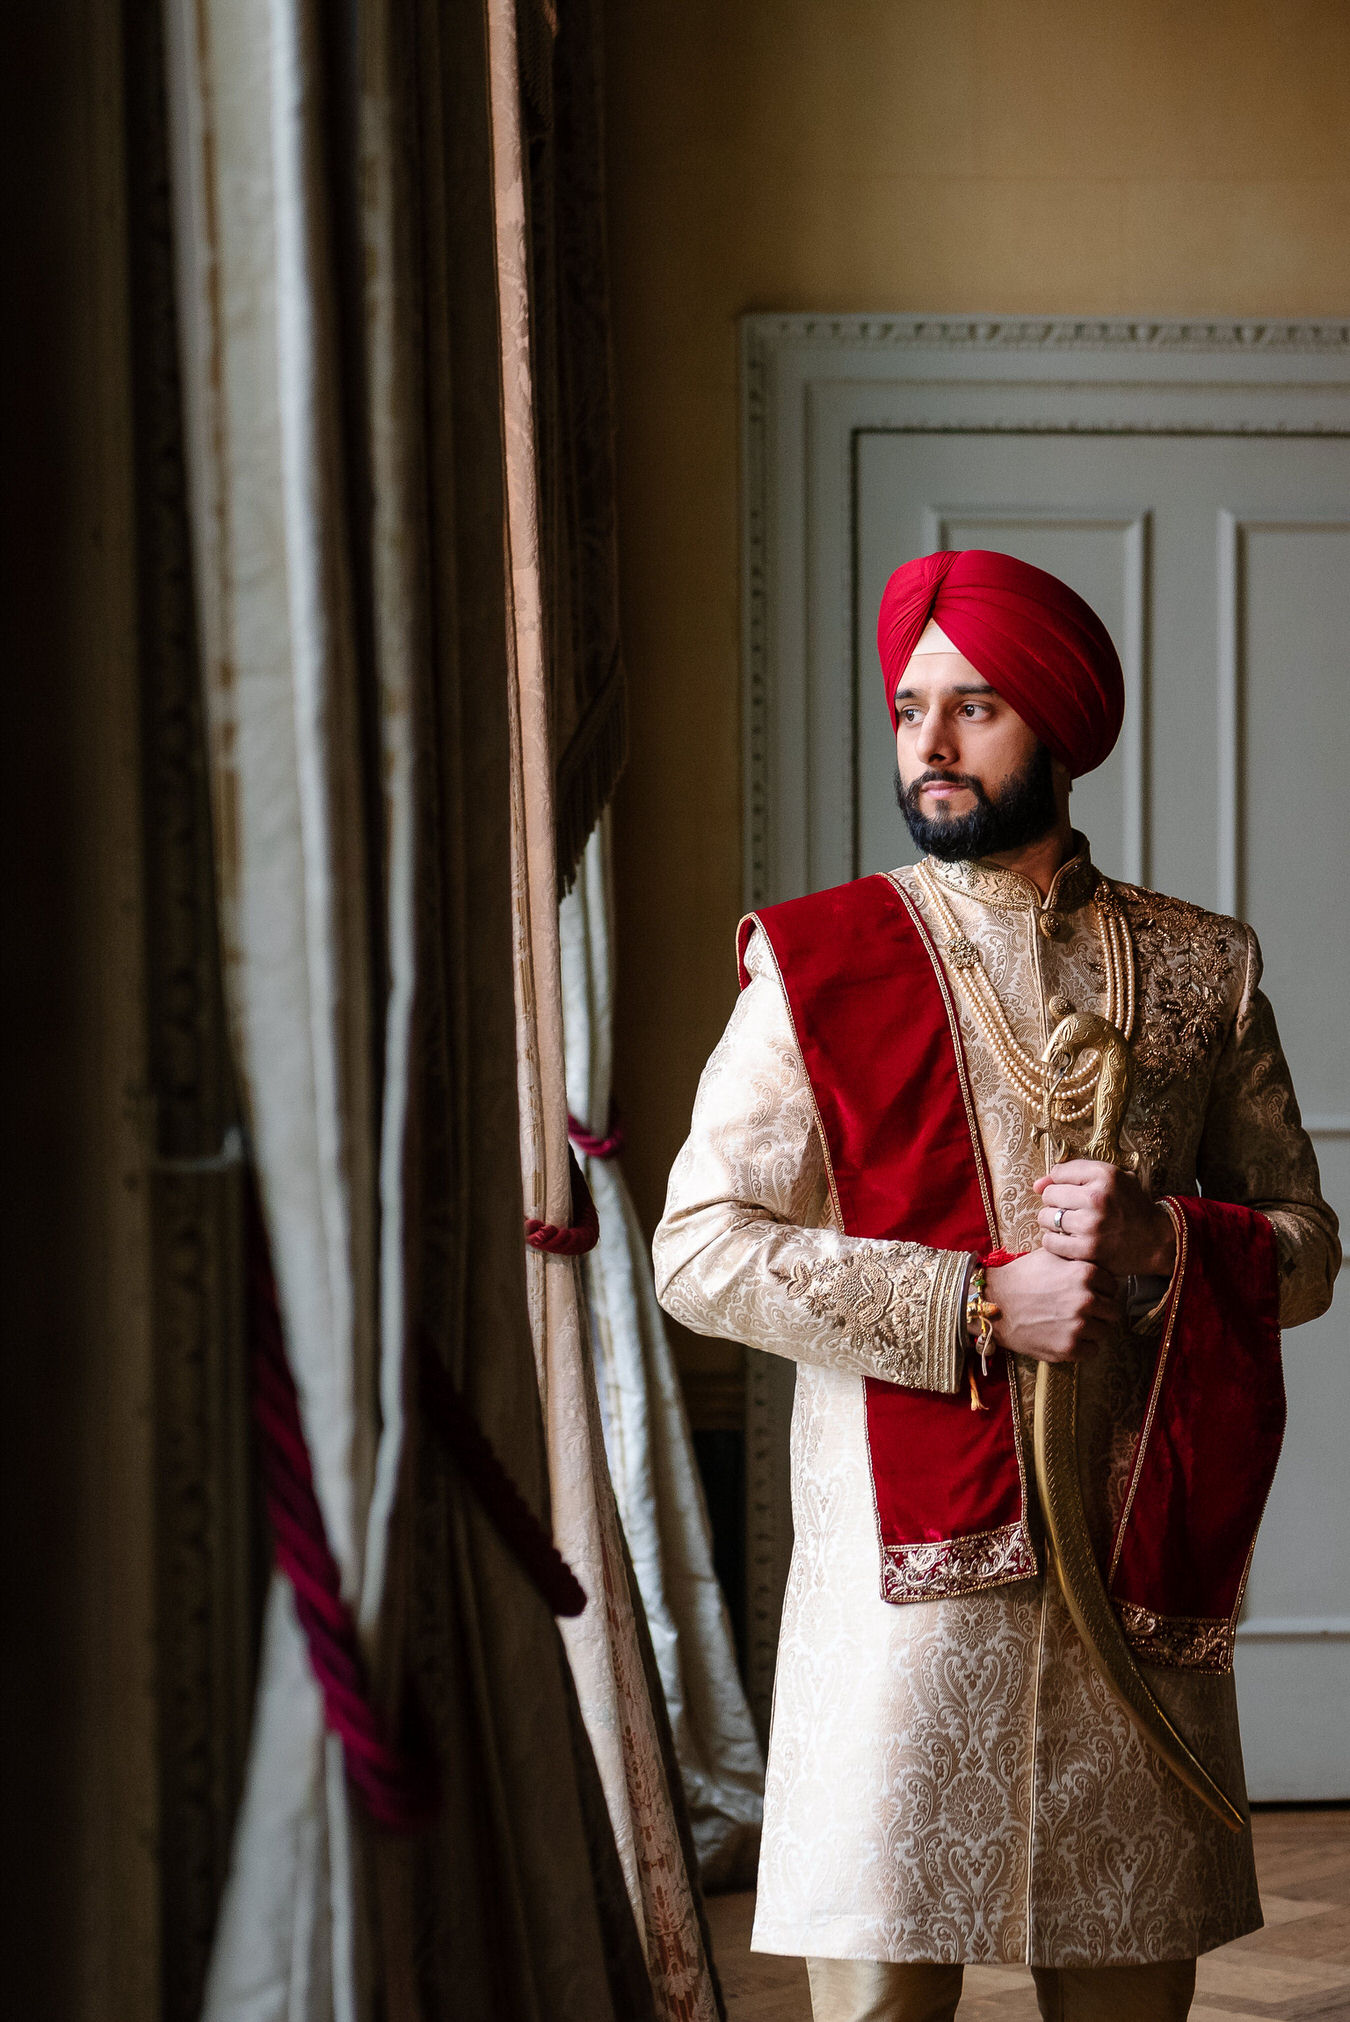 Sikh wedding groom with kirpan in his hands and a red turban on the head looking at his right.